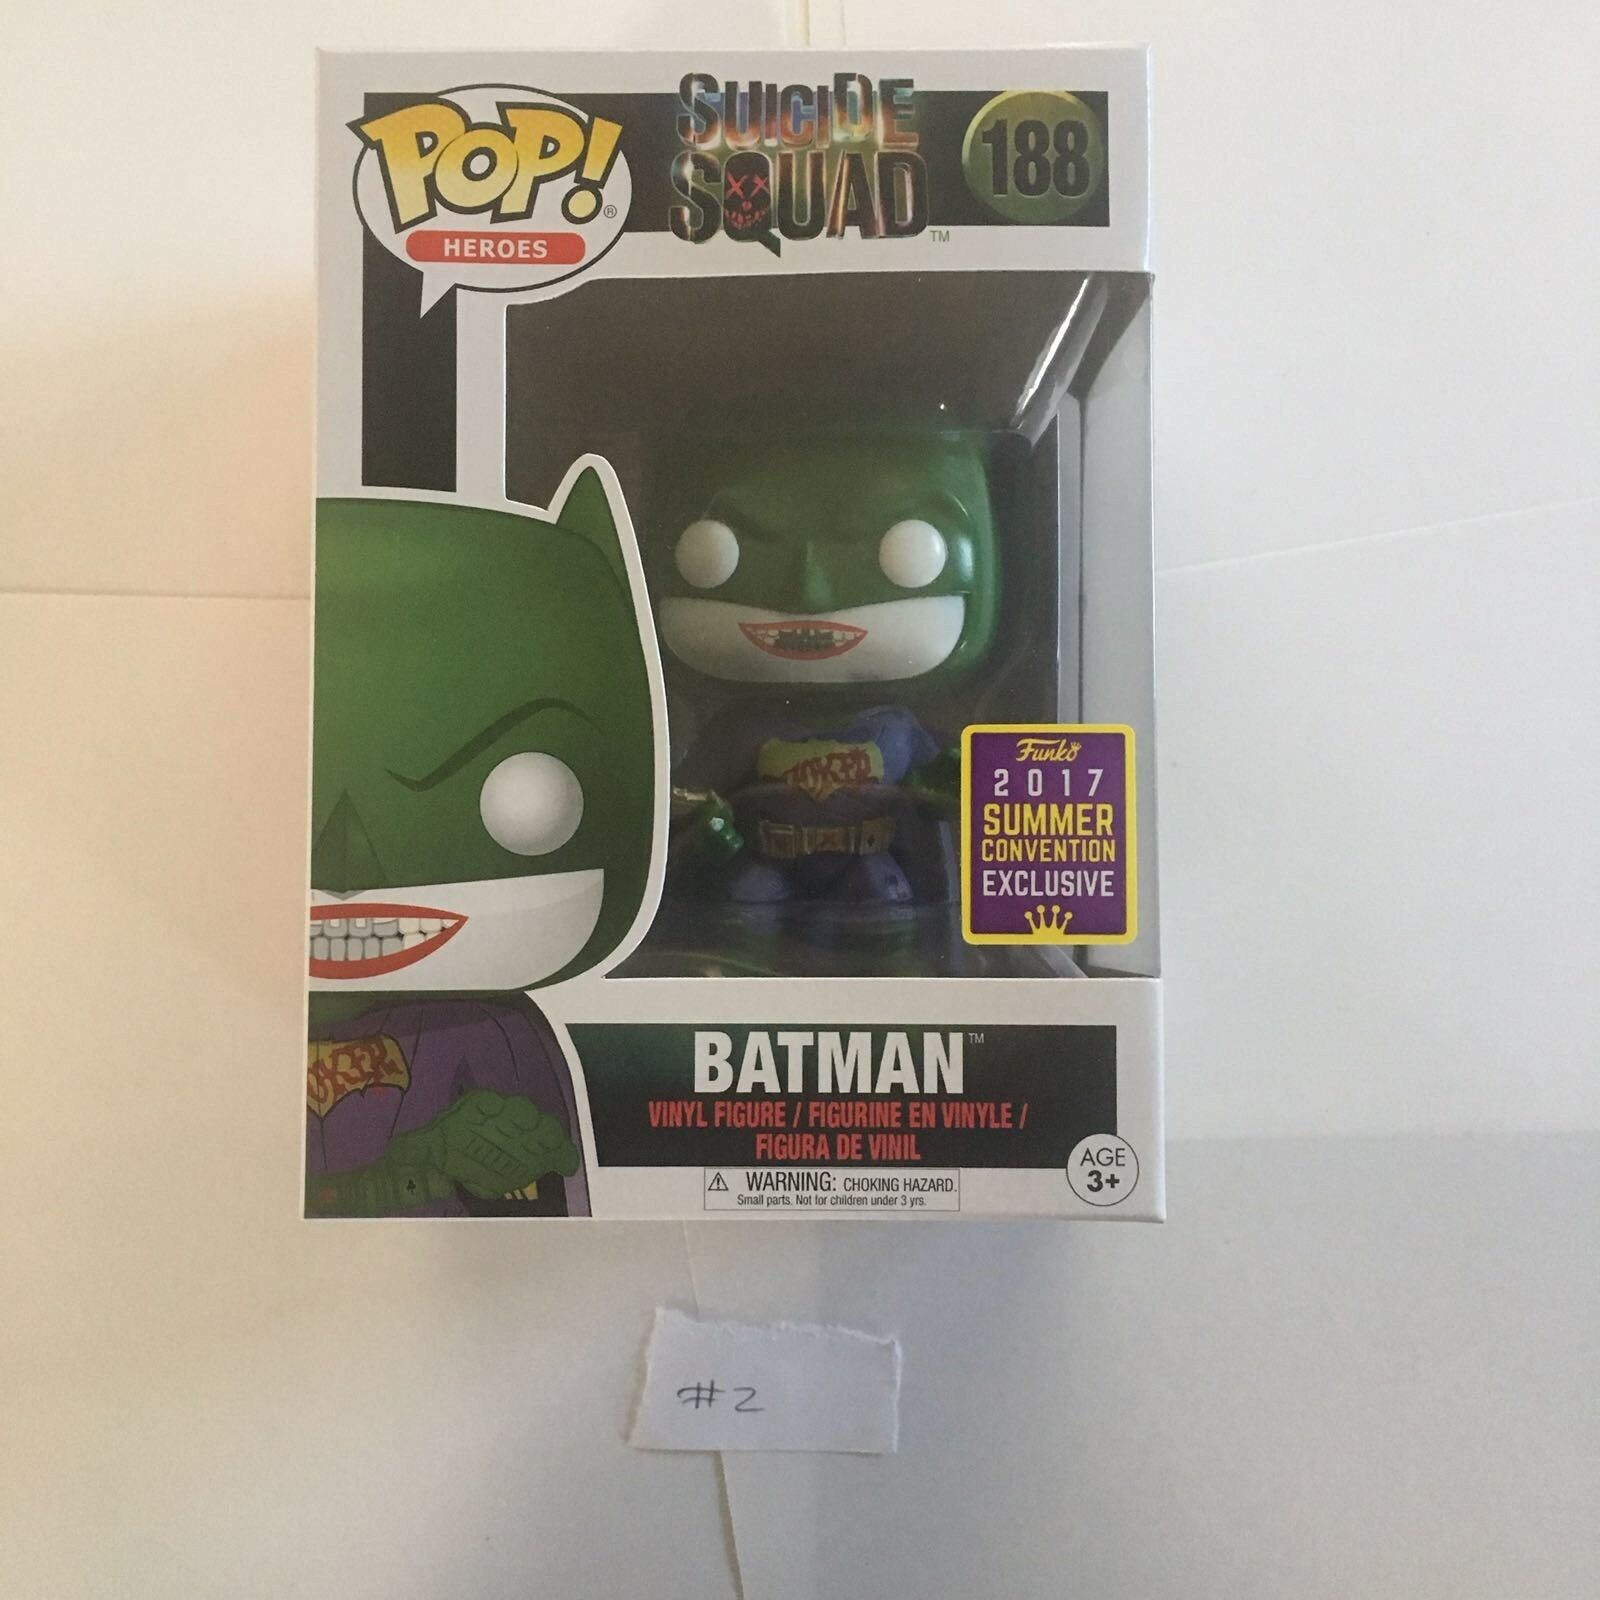 FUNKO POP BATMAN SDCC 2017 SUMMER EXCLUSIVE JOKER SUIT SUICIDE SUICIDE SUICIDE SQUAD RARE 6d3e82